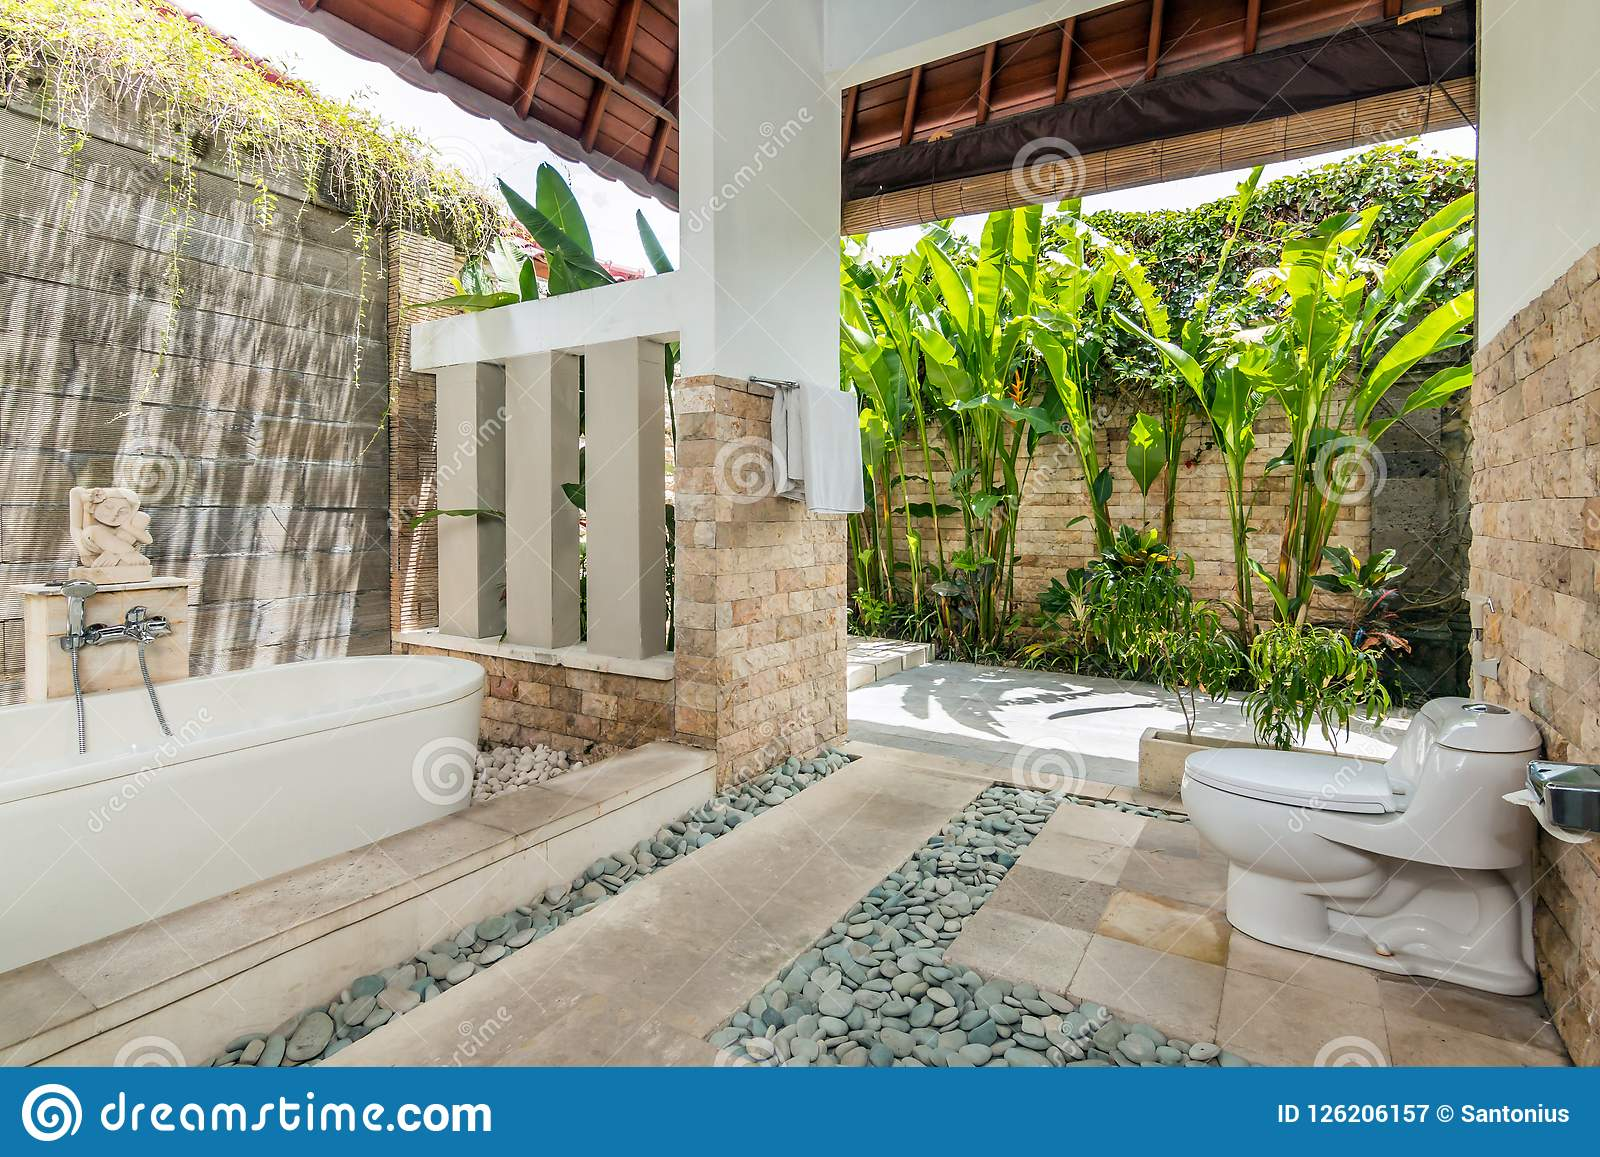 Clean And Cheap Villa Bathroom Editorial Photography - Image